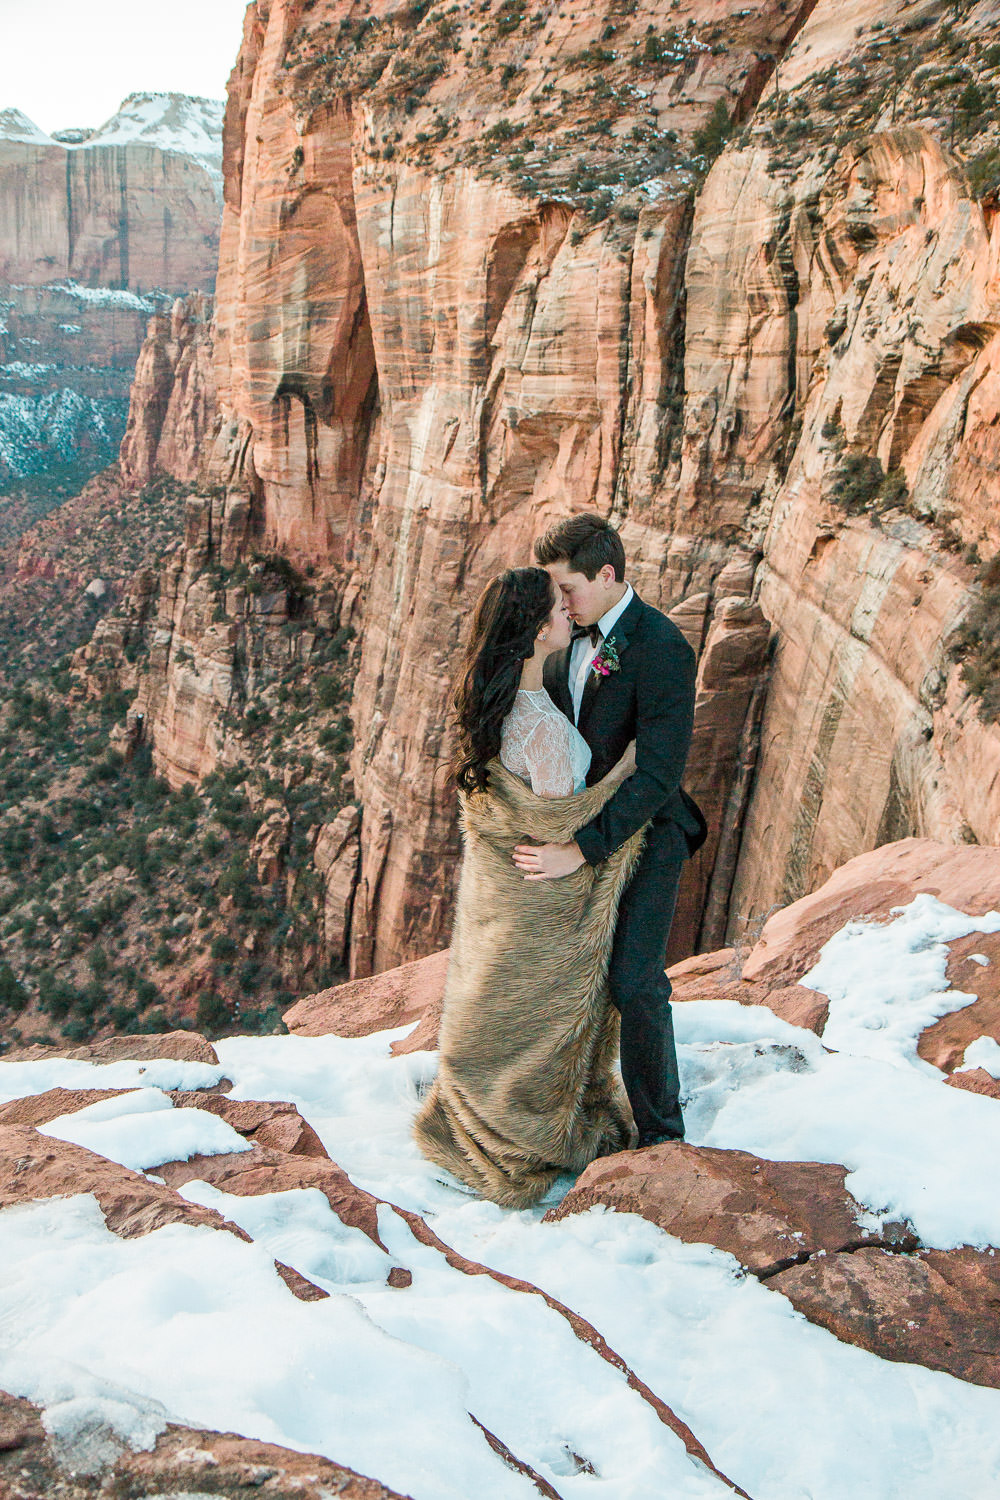 Zion National Park Canyon Overlook Destination Wedding Photographers